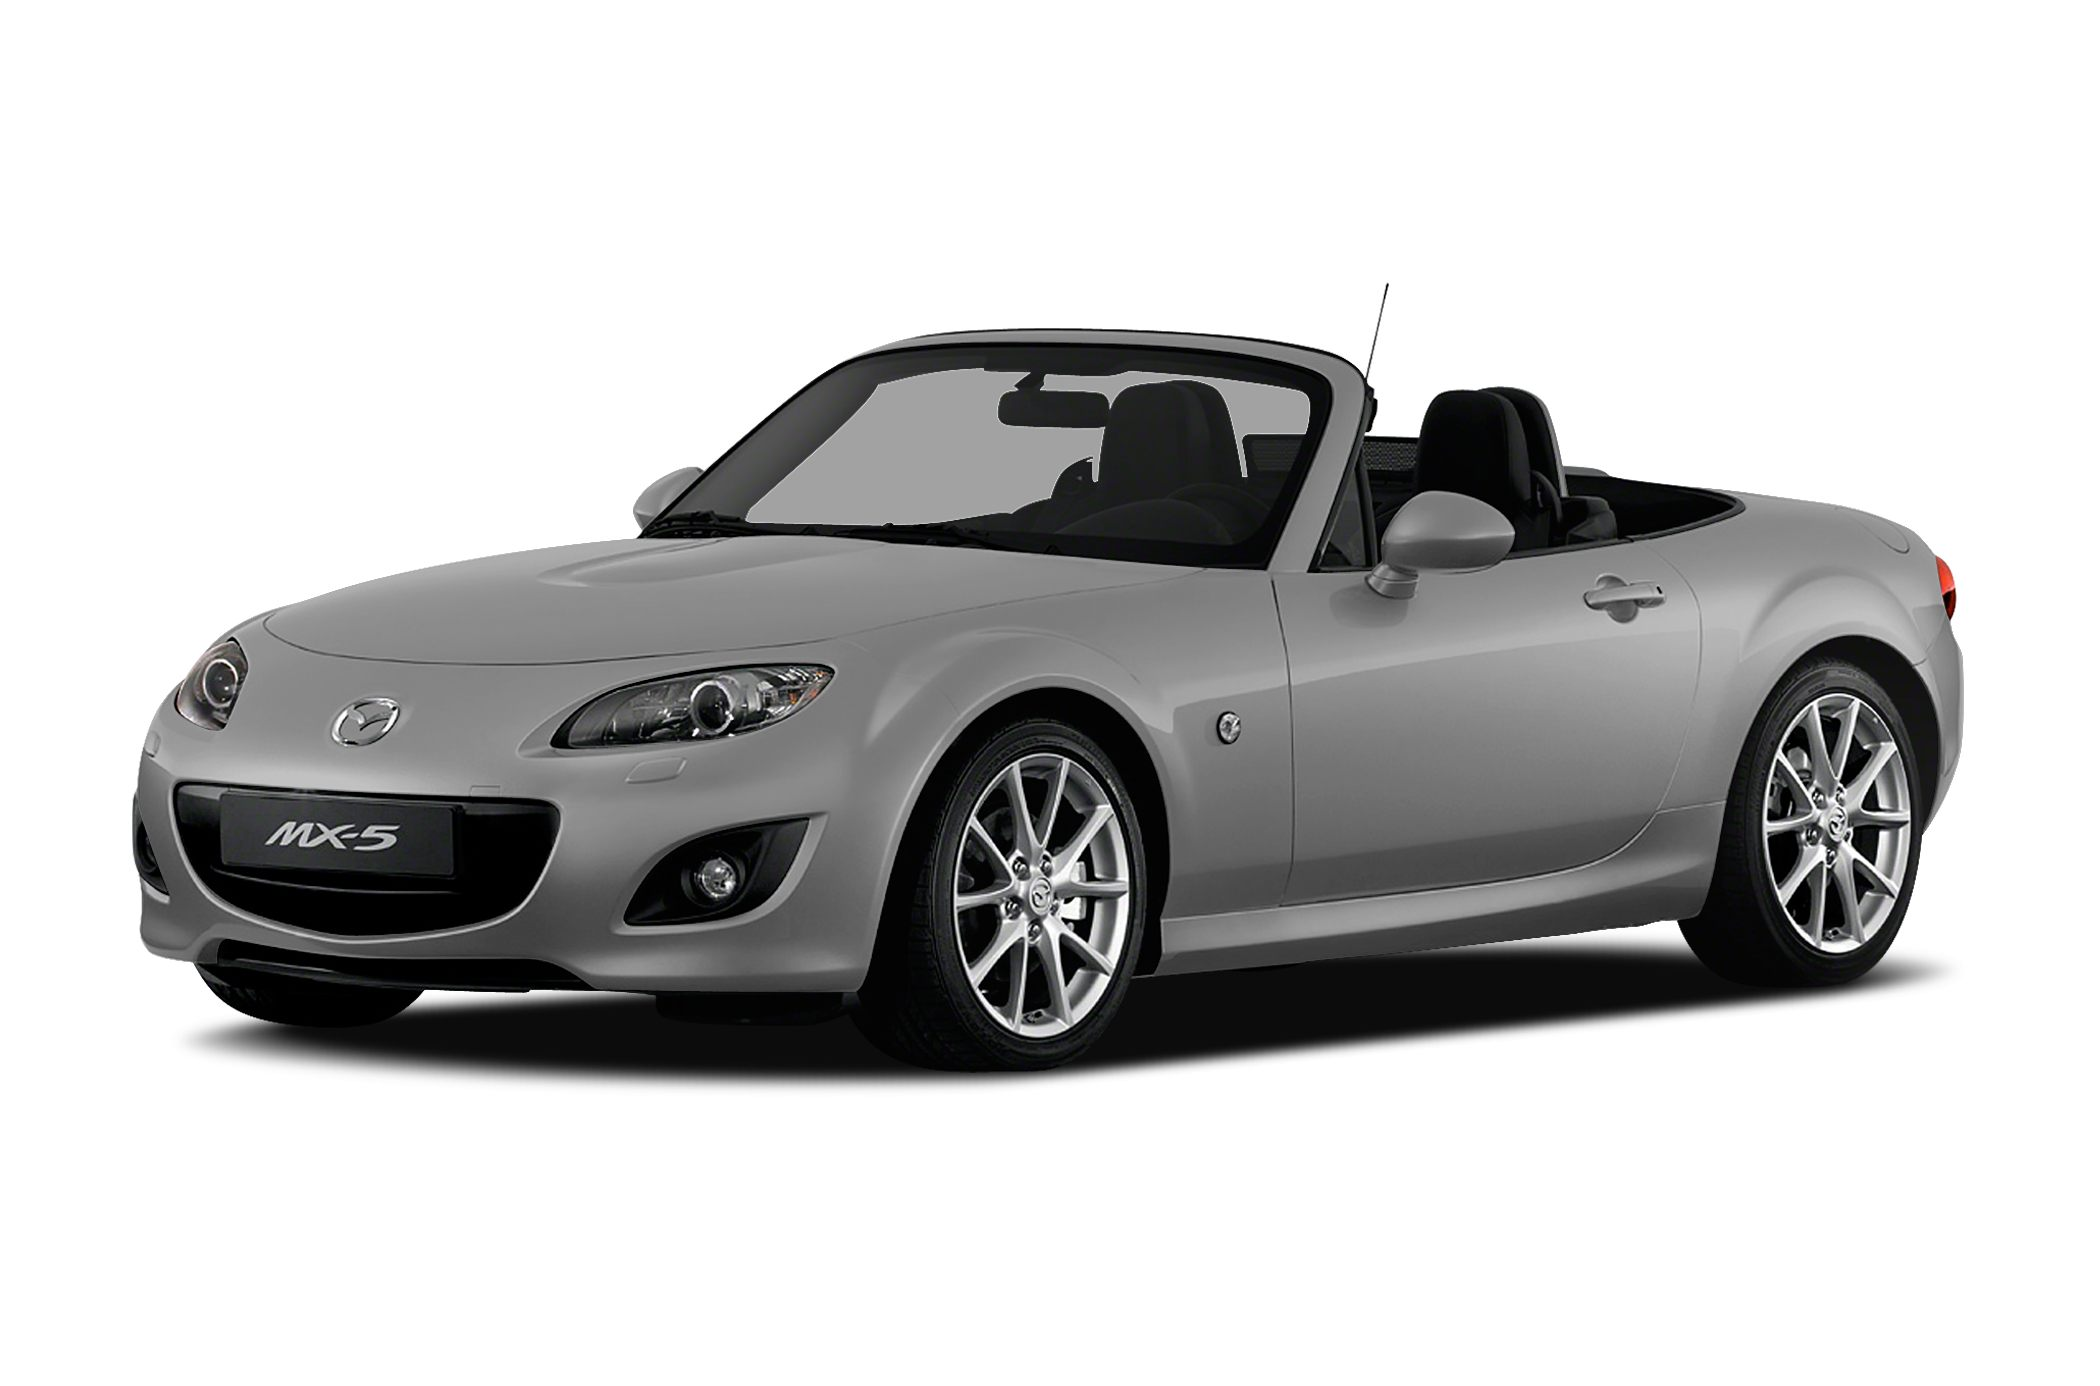 miata miami mazda com mx for and img club auto fl used cars new sale in